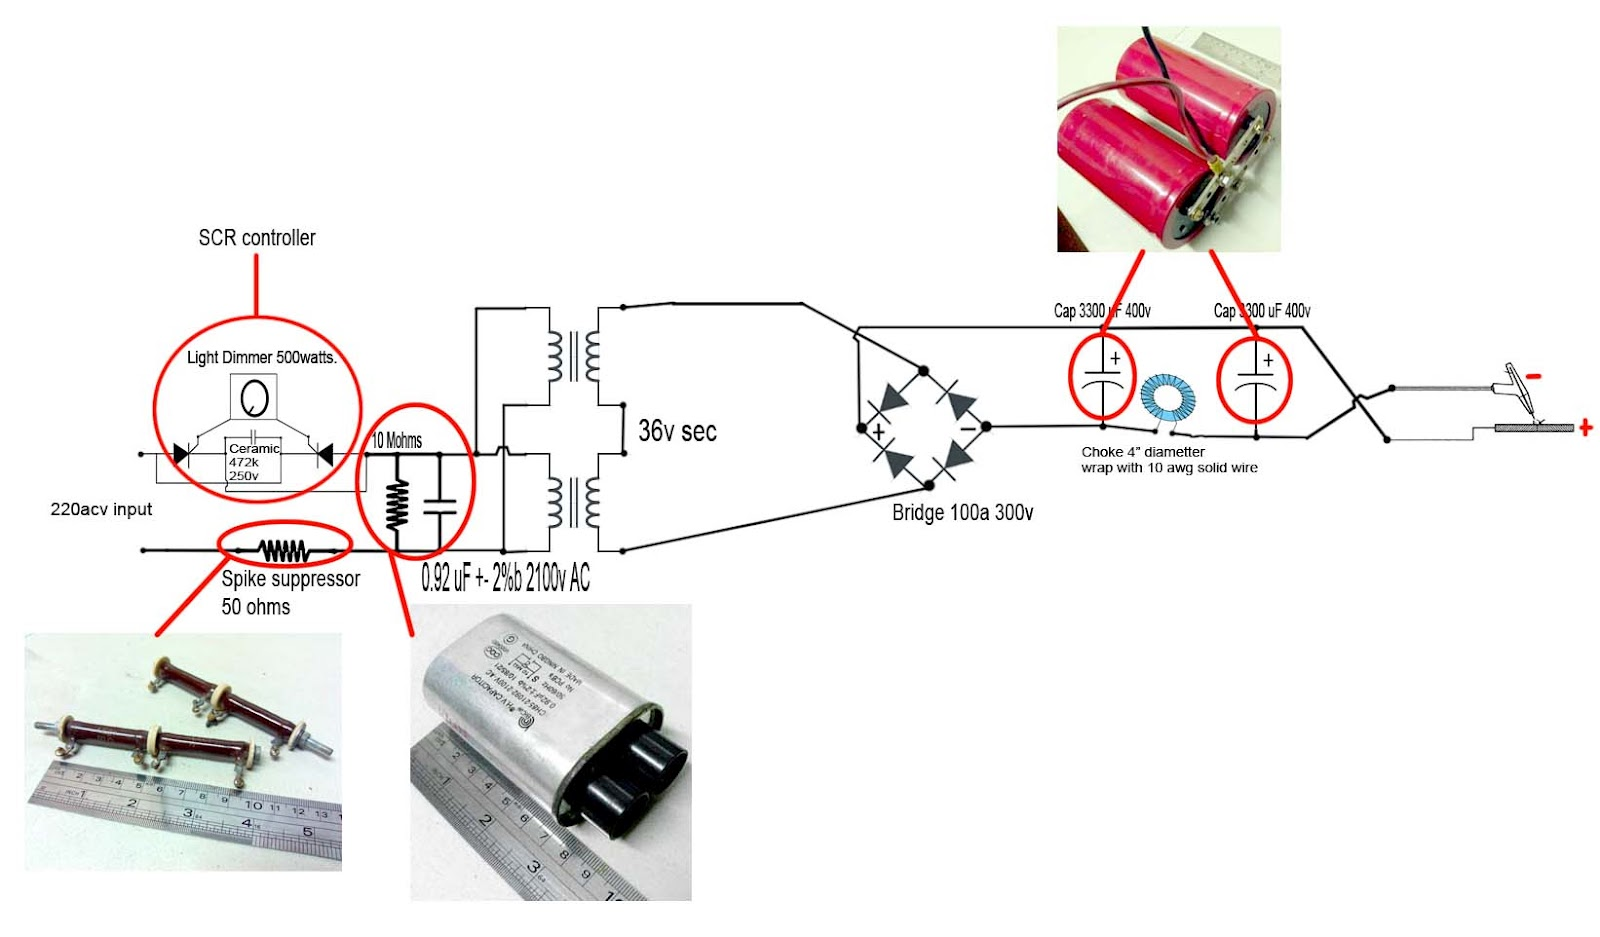 hight resolution of tig schematics and components diy